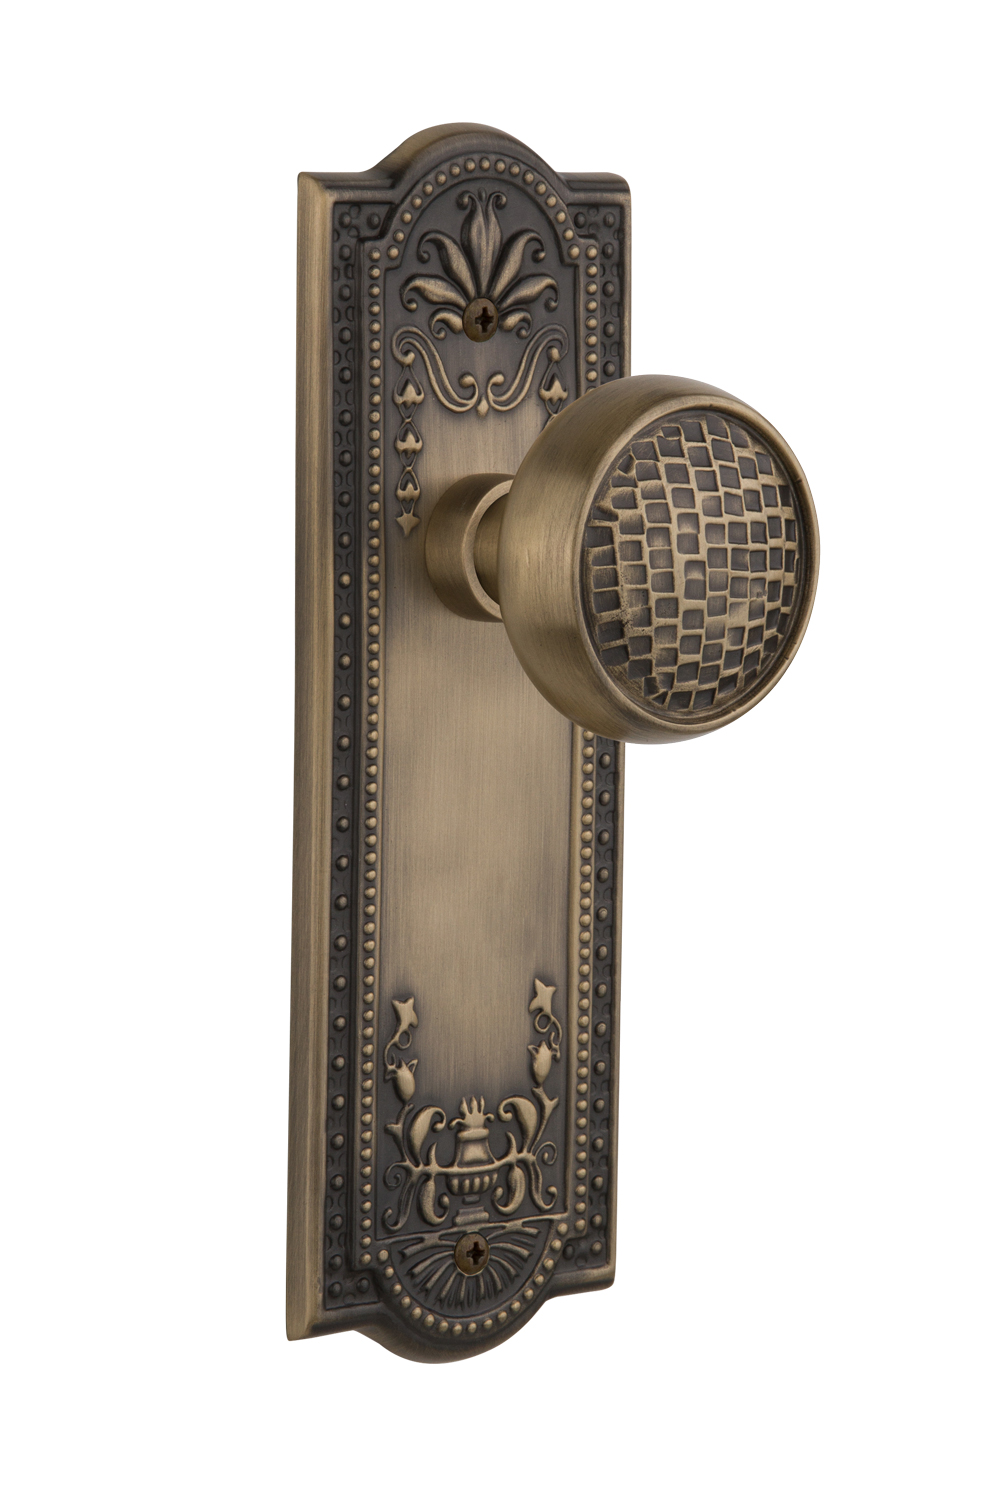 Mortise Nostalgic Warehouse Meadows Plate with Keyhole Craftsman Knob Antique Pewter